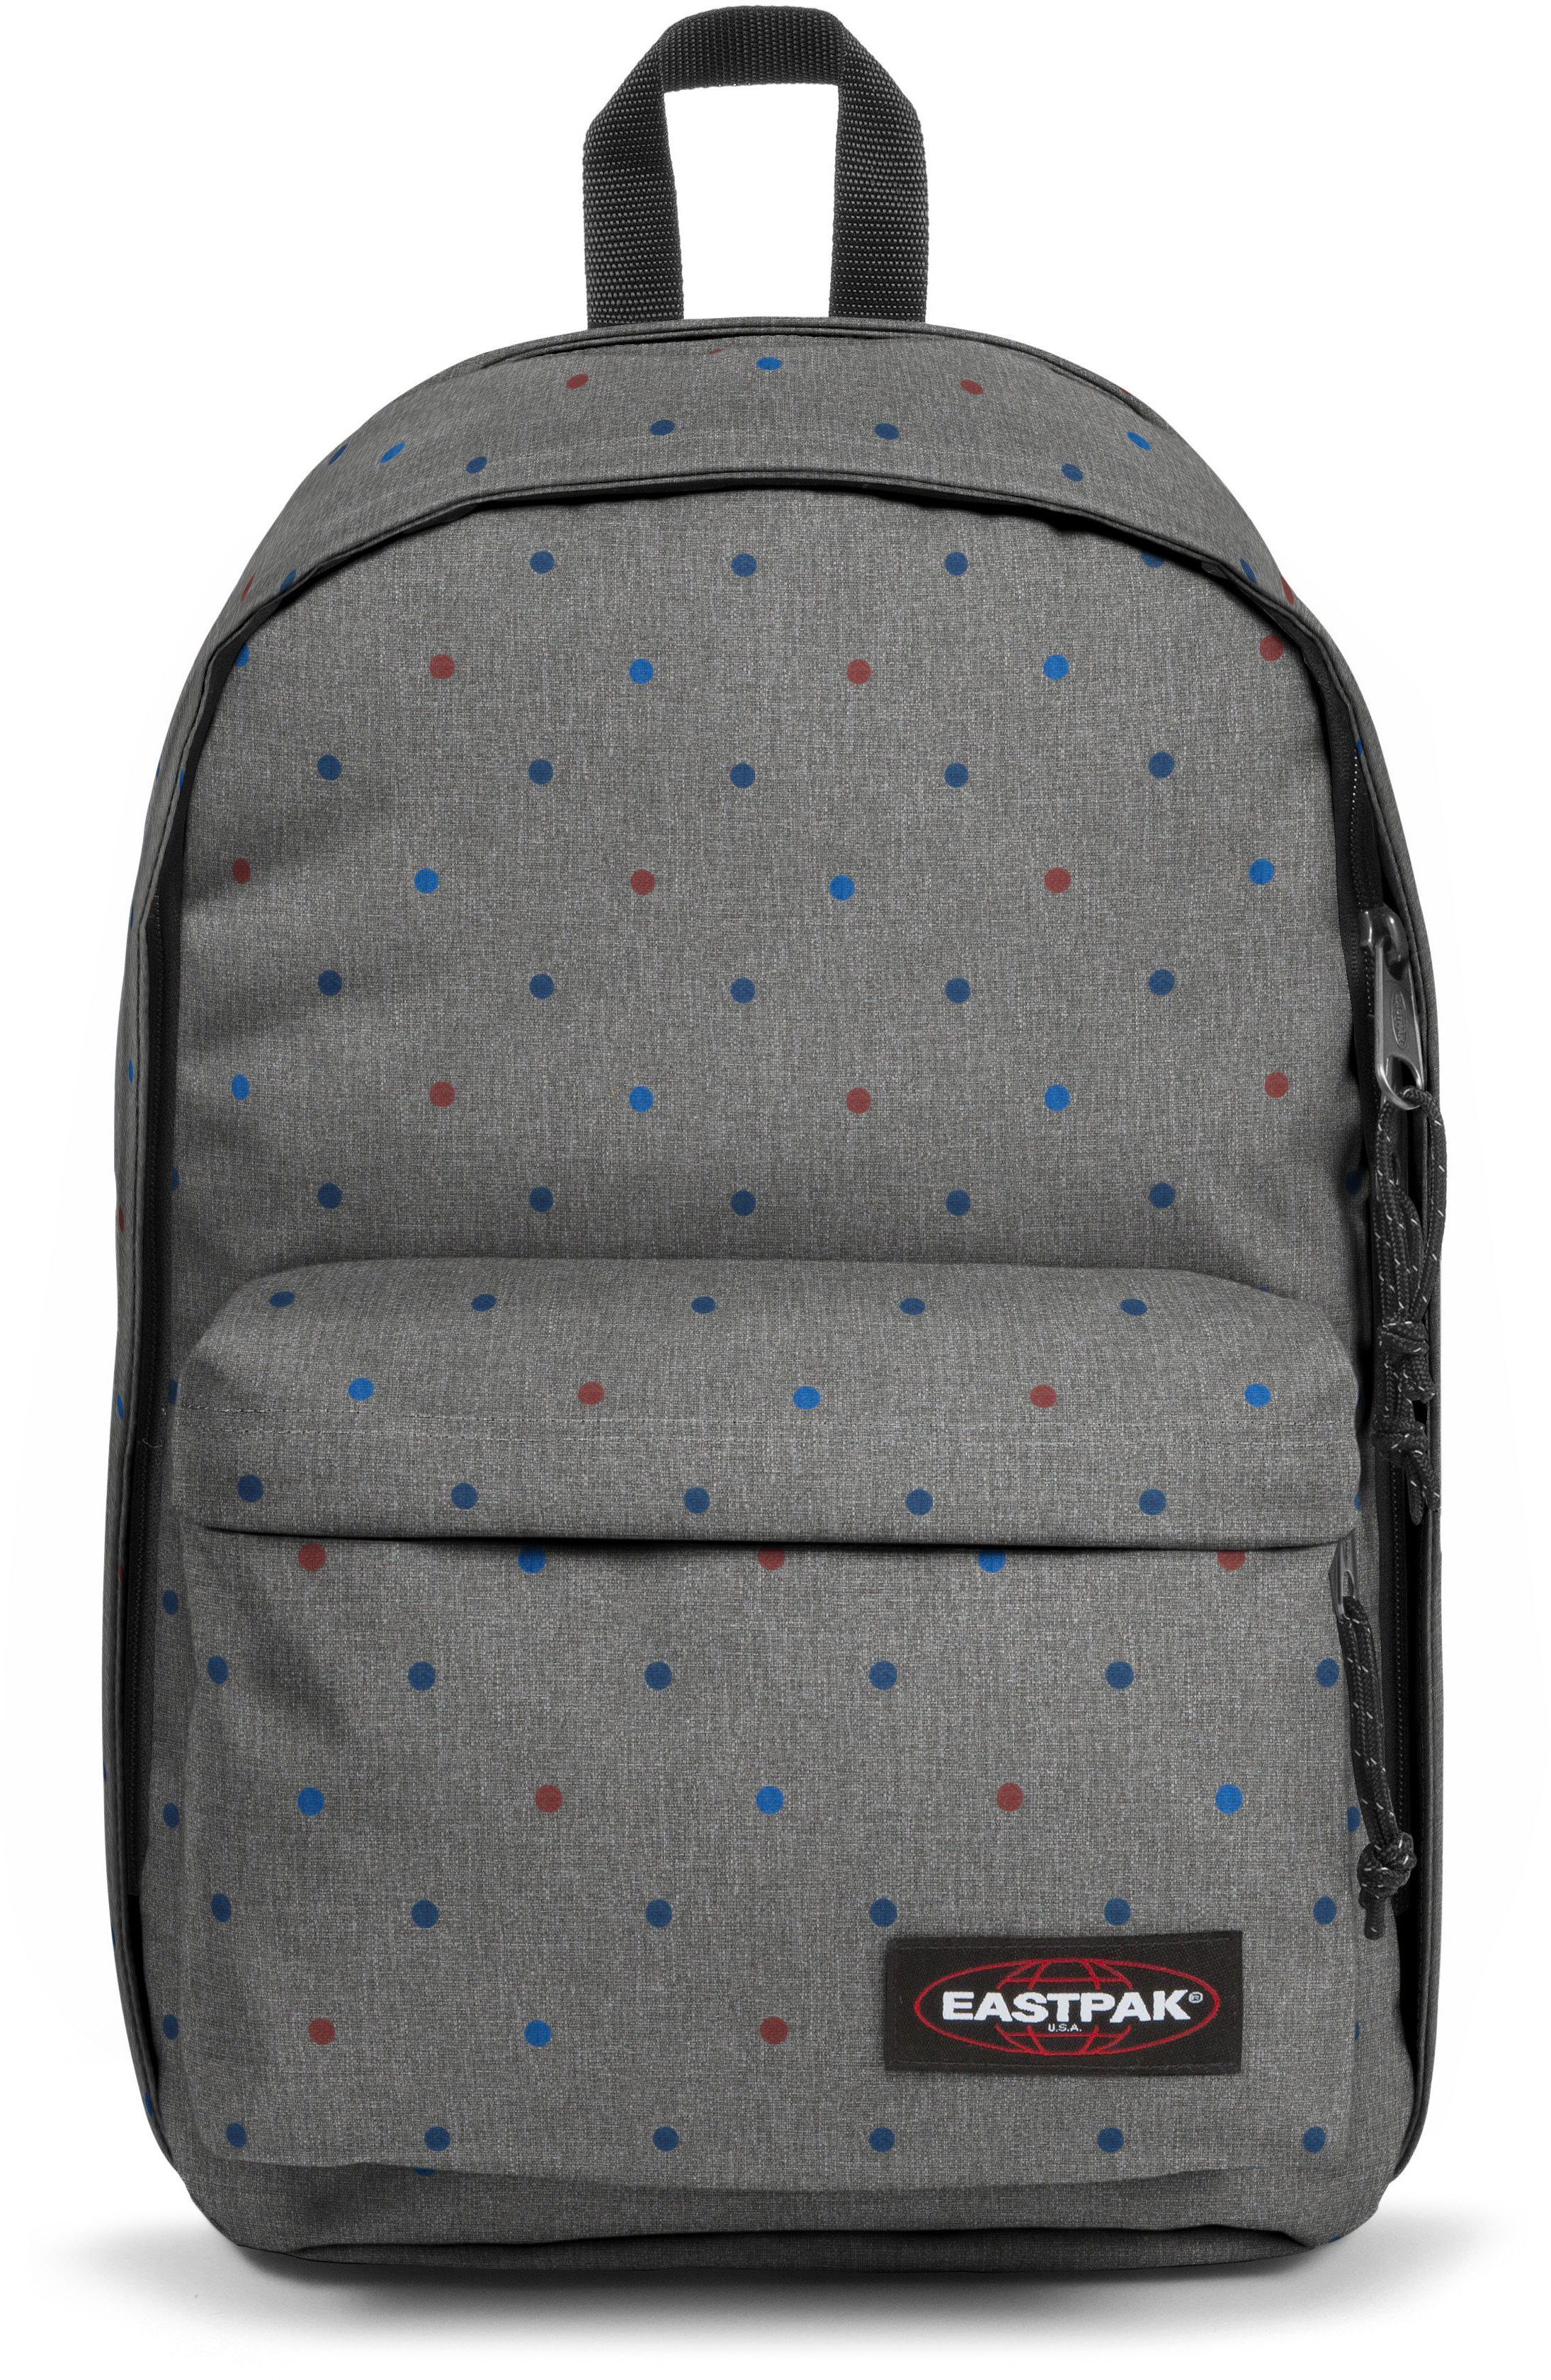 Eastpak Rucksack mit Laptopfach, »BACK TO WORK trio dots«